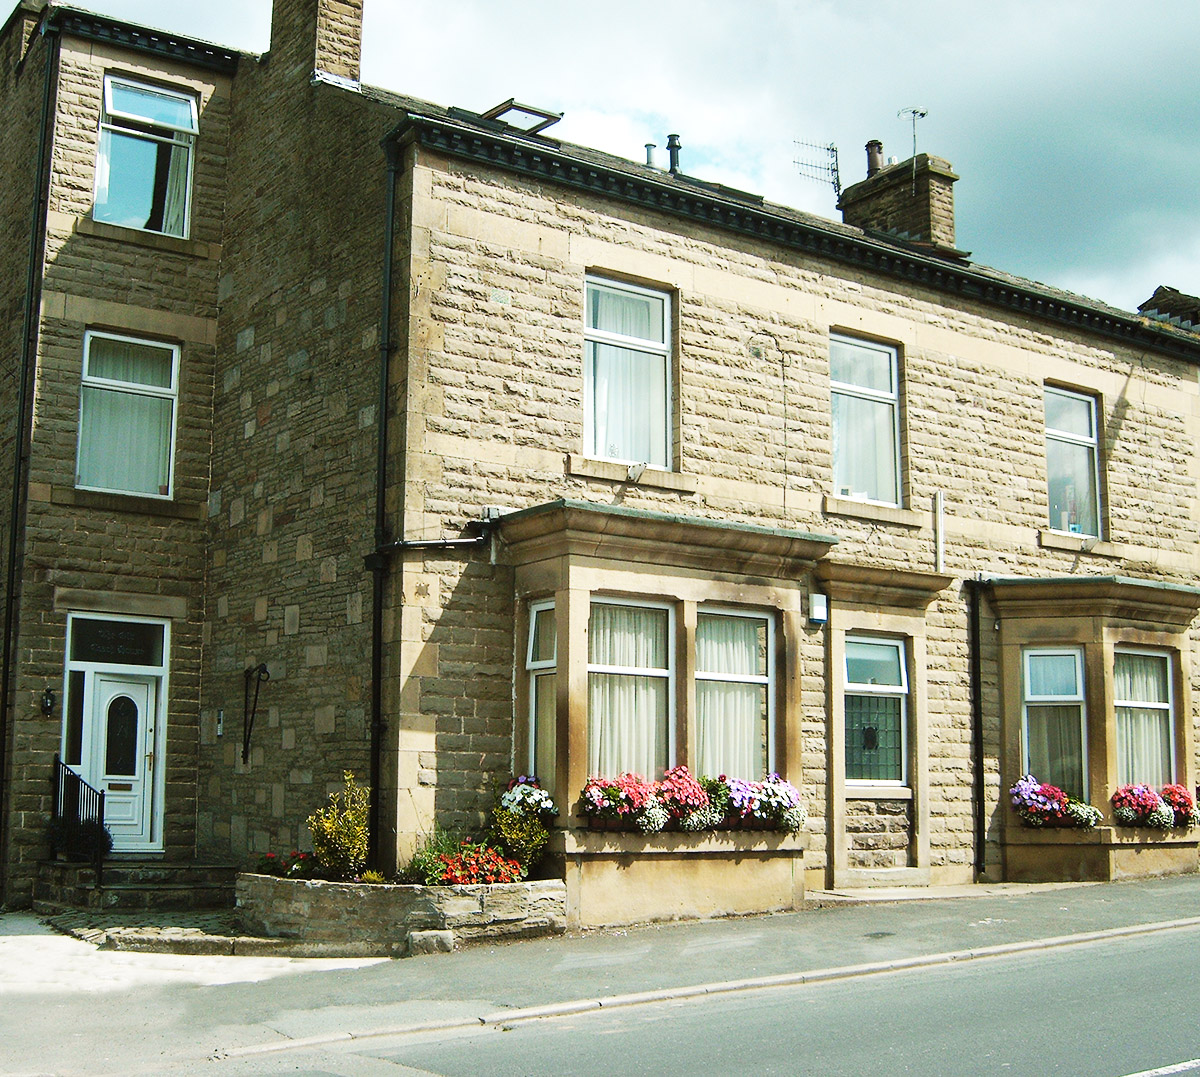 600 Front Street Apartments: Old Coaching House, Market Street, Edenfield, Ramsbottom